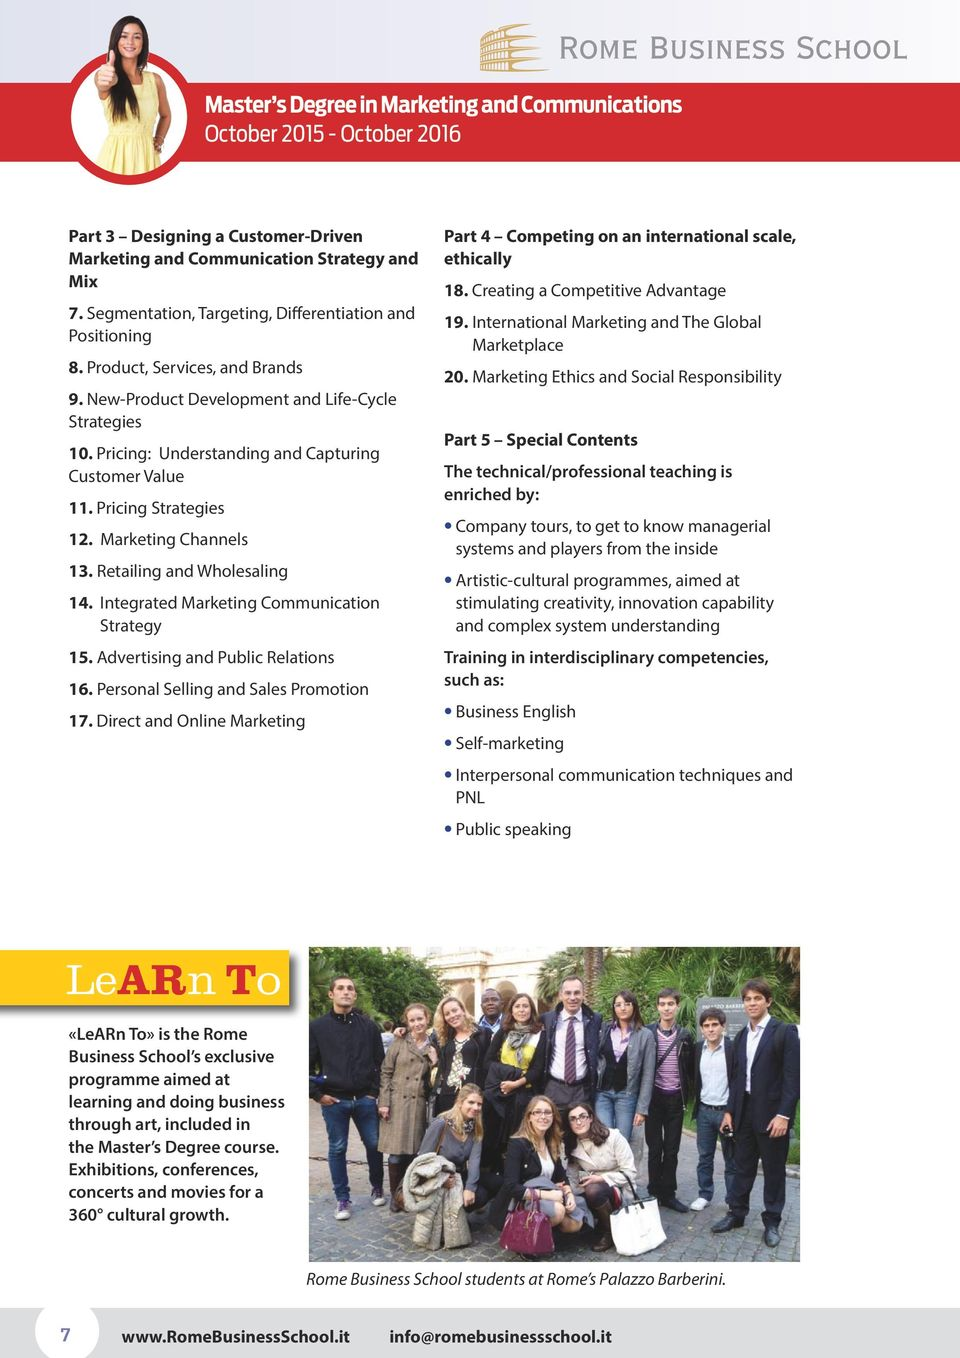 Integrated Marketing Communication Strategy 15. Advertising and Public Relations 16. Personal Selling and Sales Promotion 17.